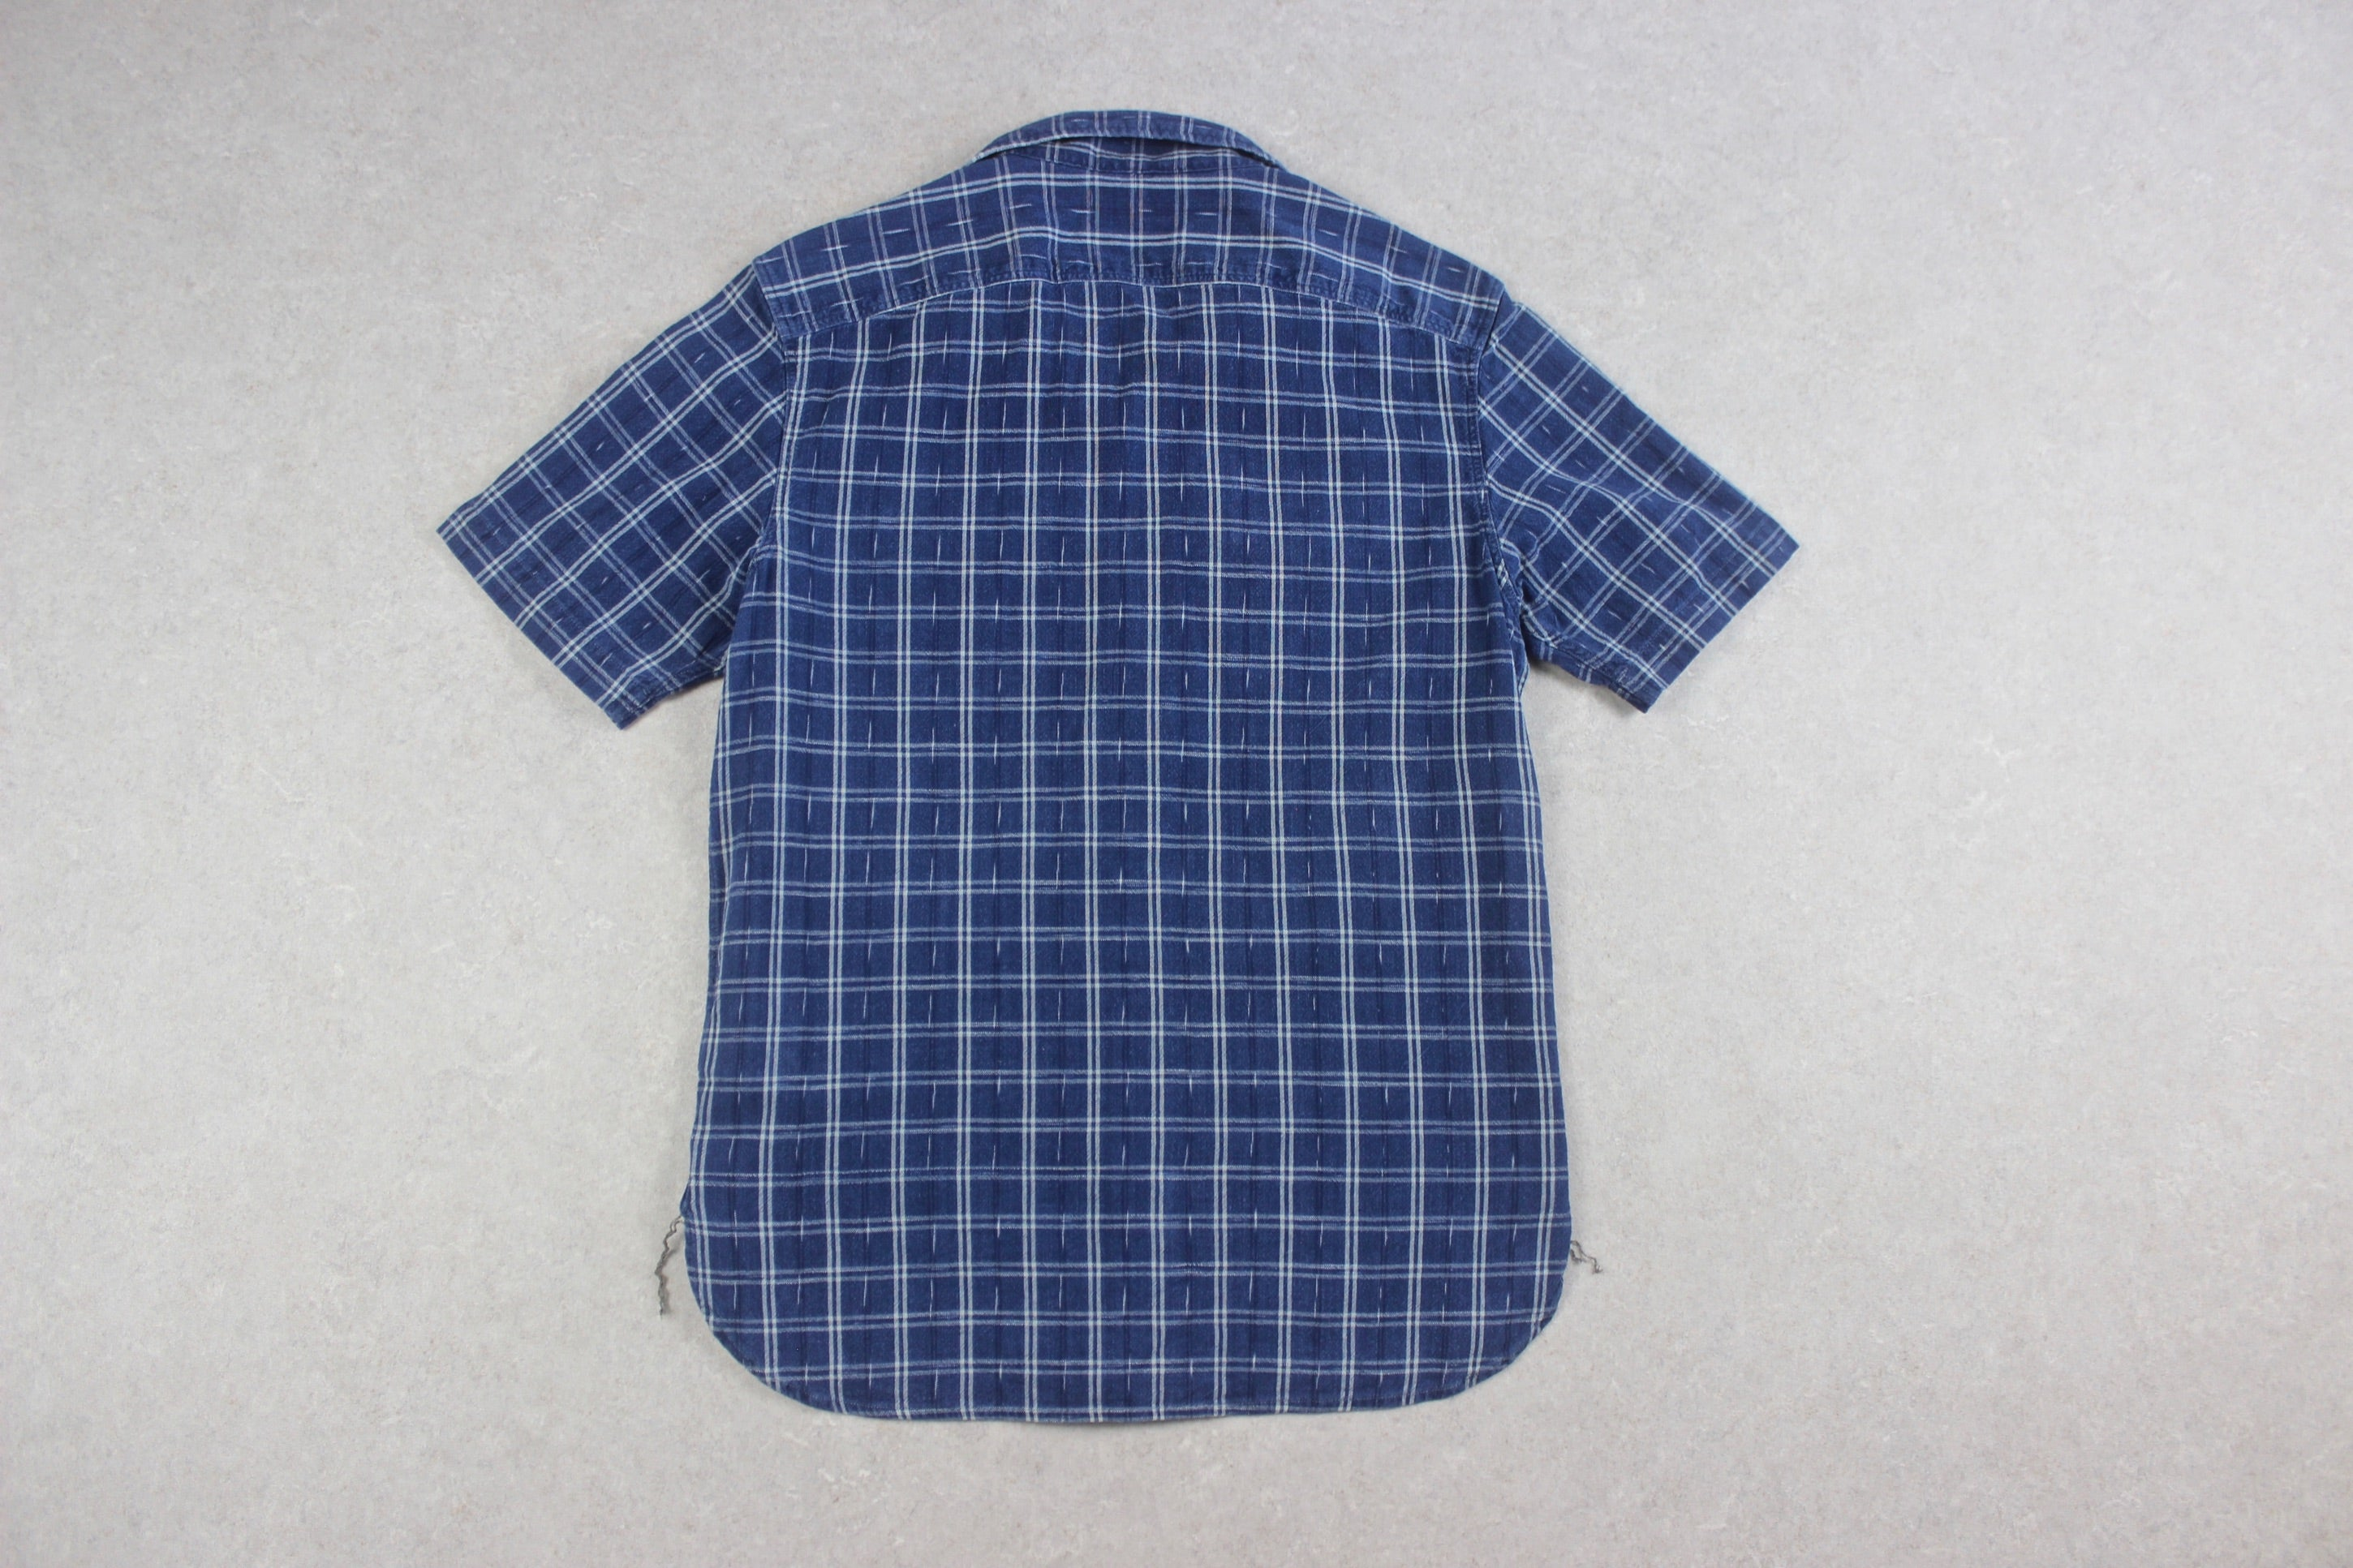 RRL Ralph Lauren - Camp Collar Short Sleeve Shirt - Chambray Blue - Small